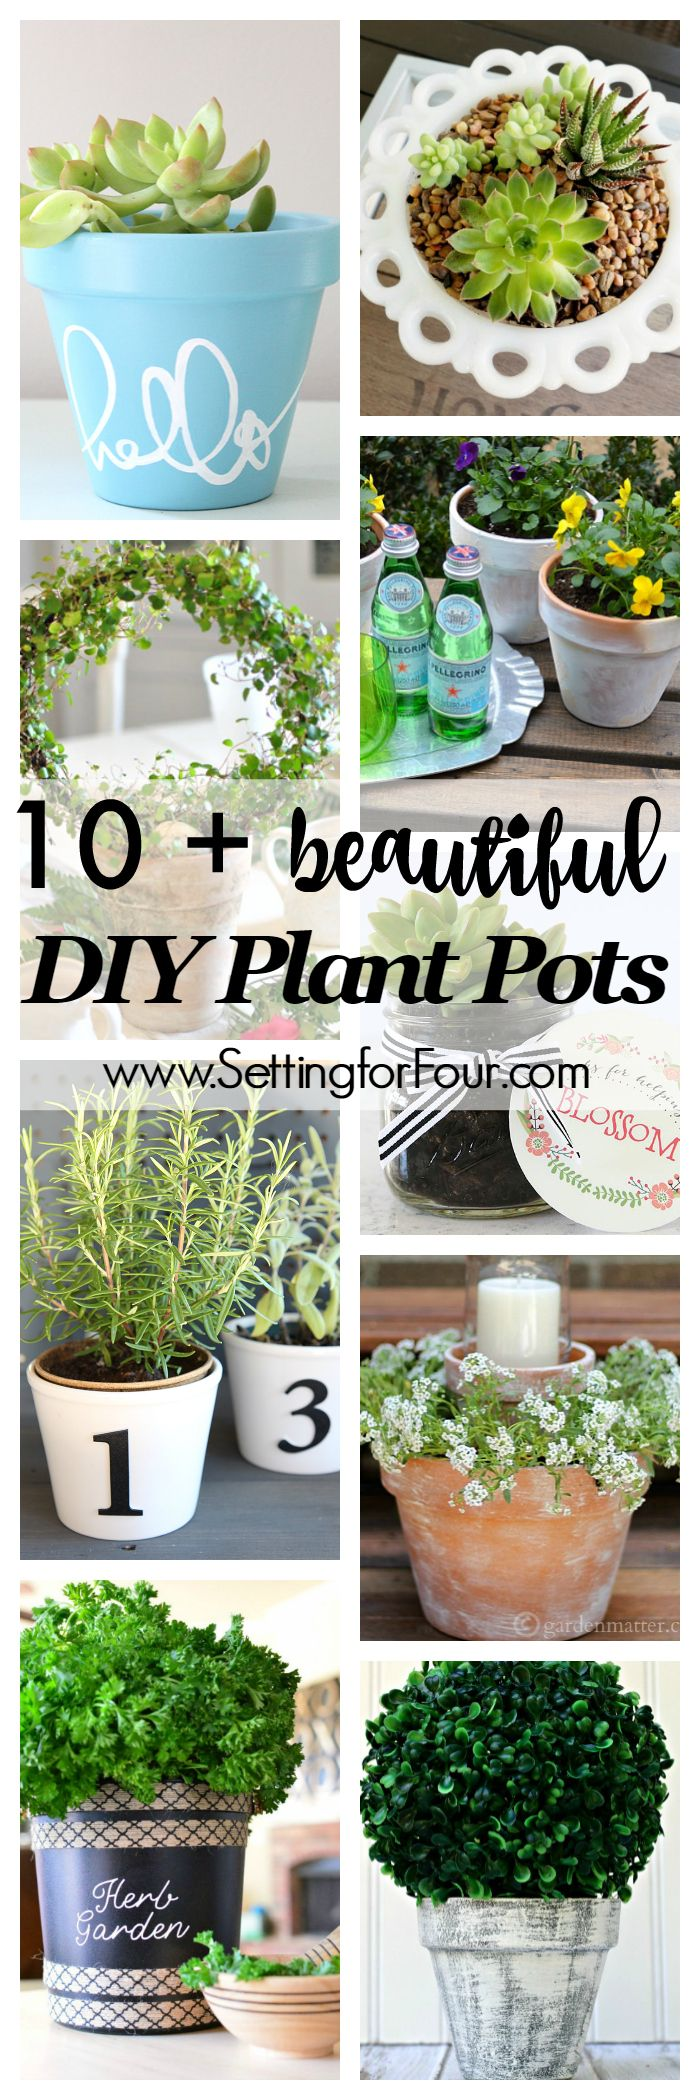 Top 30 stunning low budget diy garden pots and containers 187 home - 10 Beautiful Diy Plant Pots